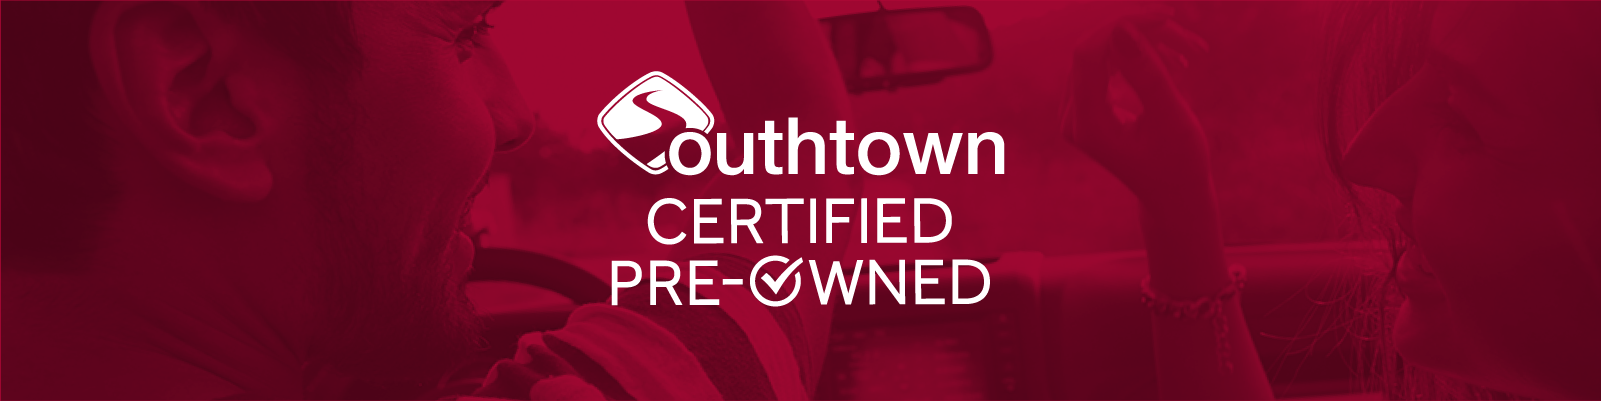 Southtown Certified Pre-Owned